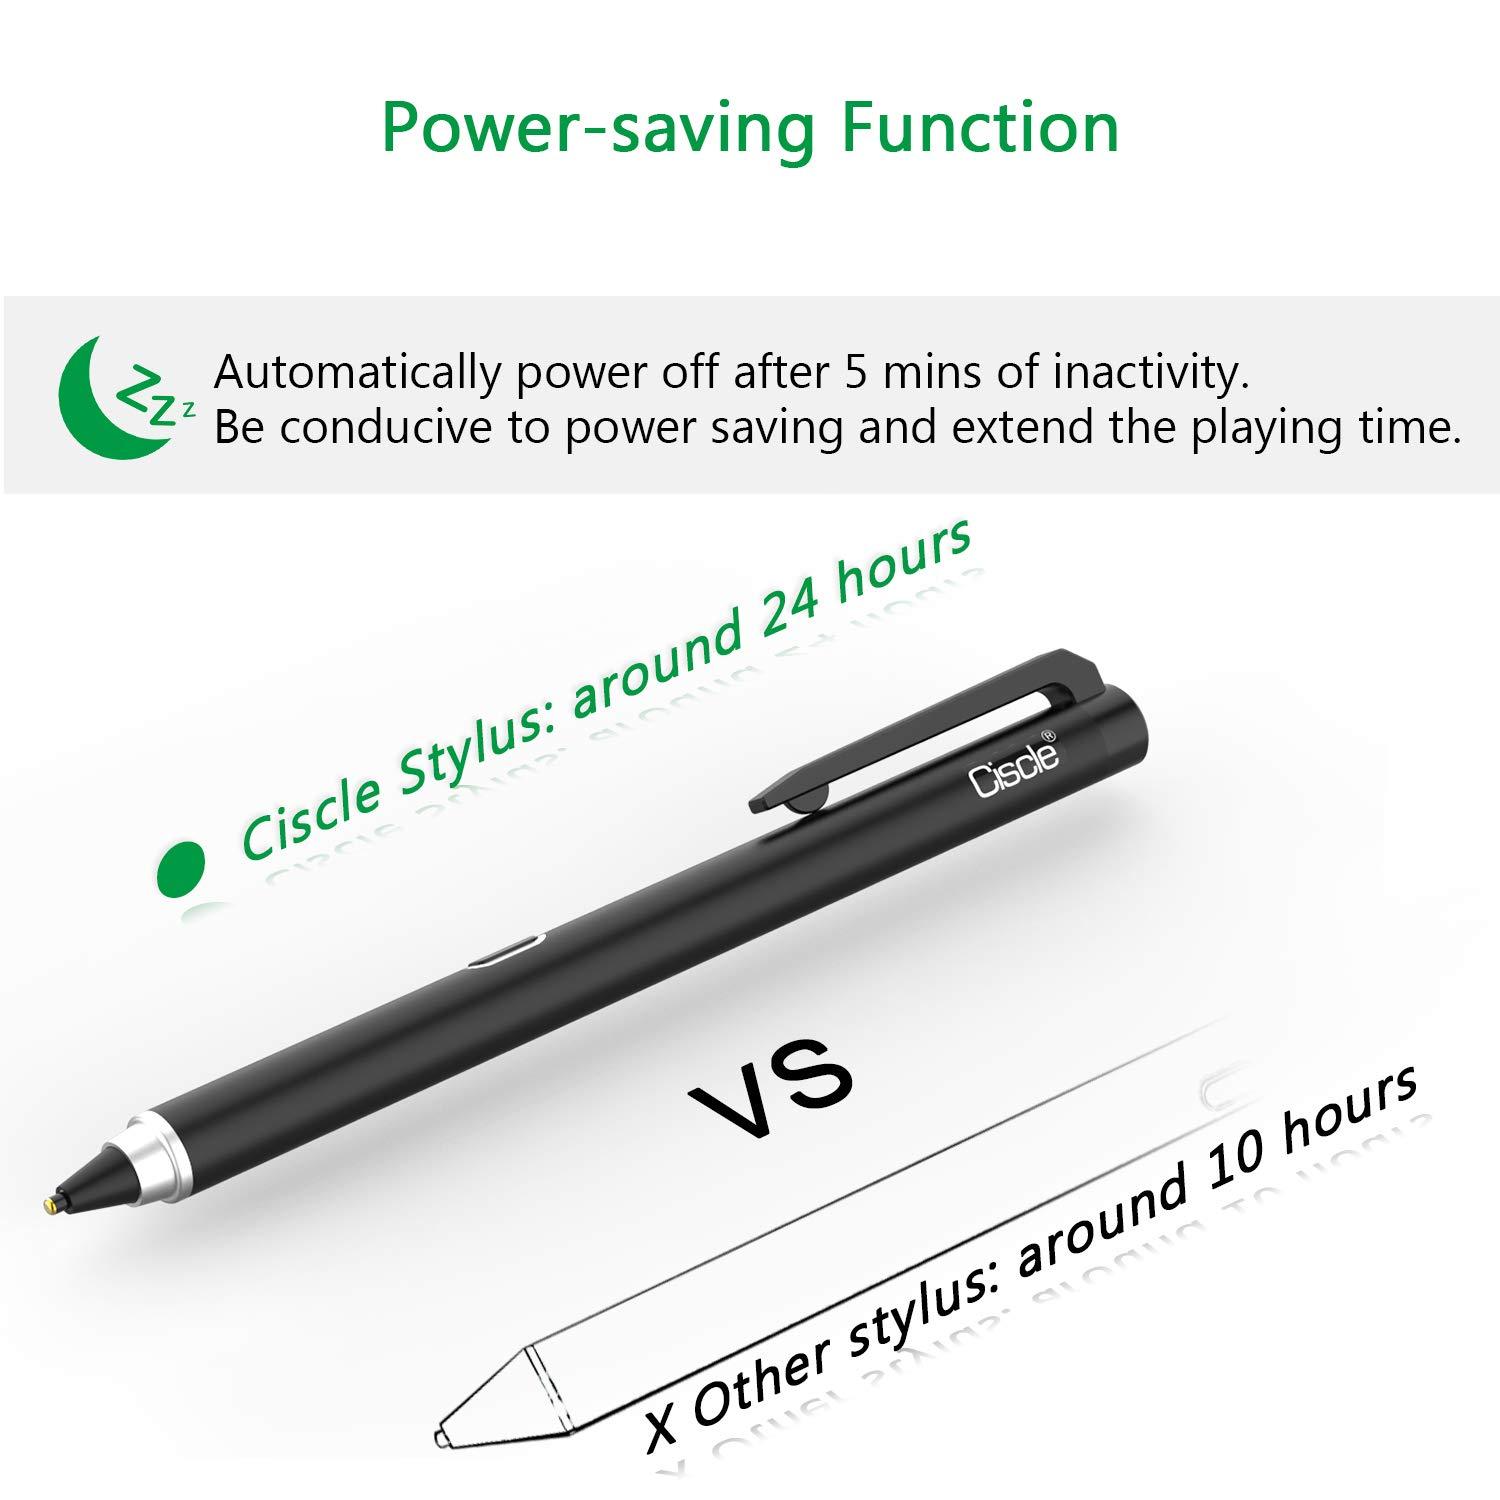 Rechargeable Pencil Compatible with iPad Pro Android Tablets iPhone Blue Ciscle Stylus Pen with 5 Min Auto Power Off and 1.5mm Fine Point Copper Tip Samsung